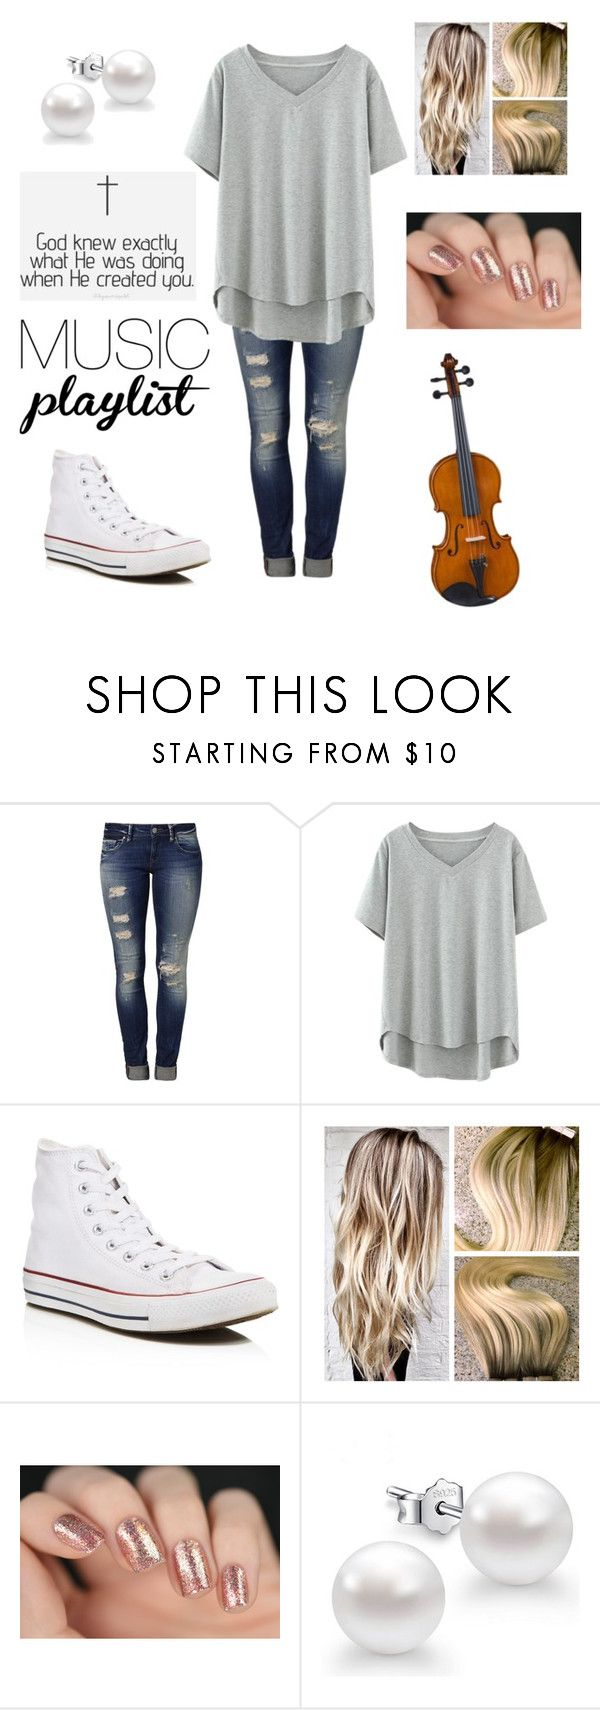 """""""Untitled #249"""" by egabest ❤ liked on Polyvore featuring Mavi, Converse and BLVD Supply"""